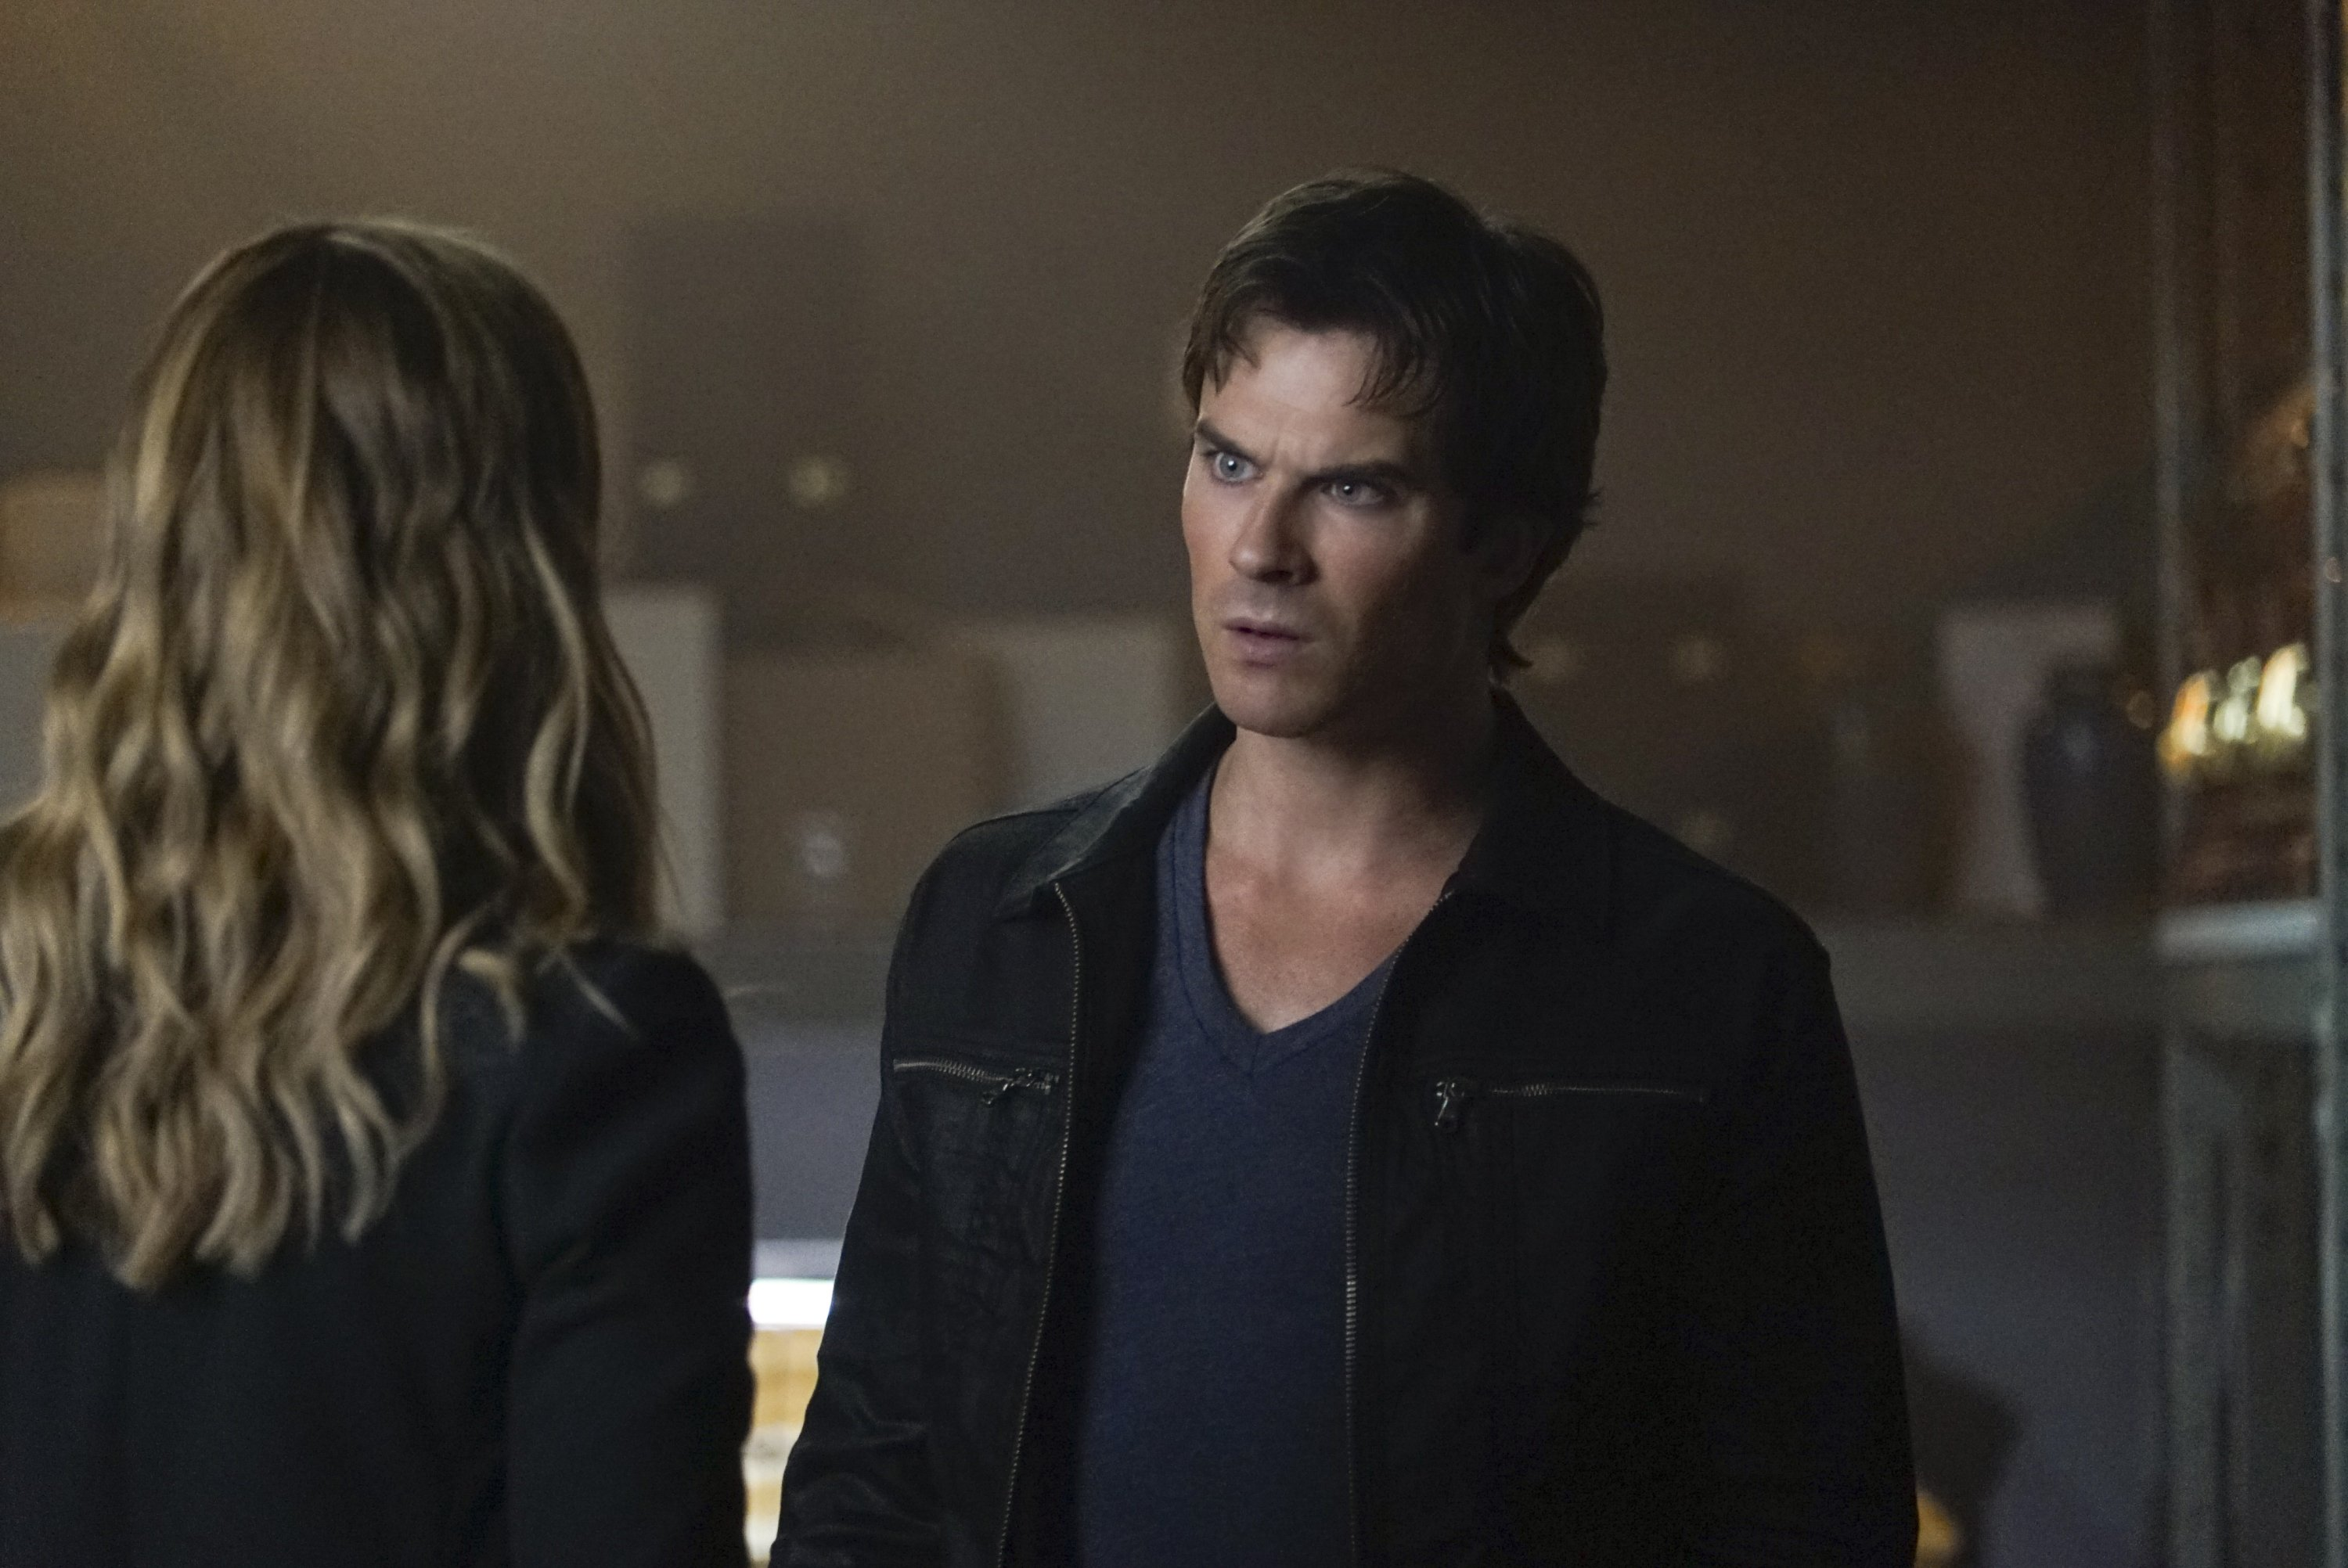 The Vampire Diaries Live Through This 7x05 Promotional Picture